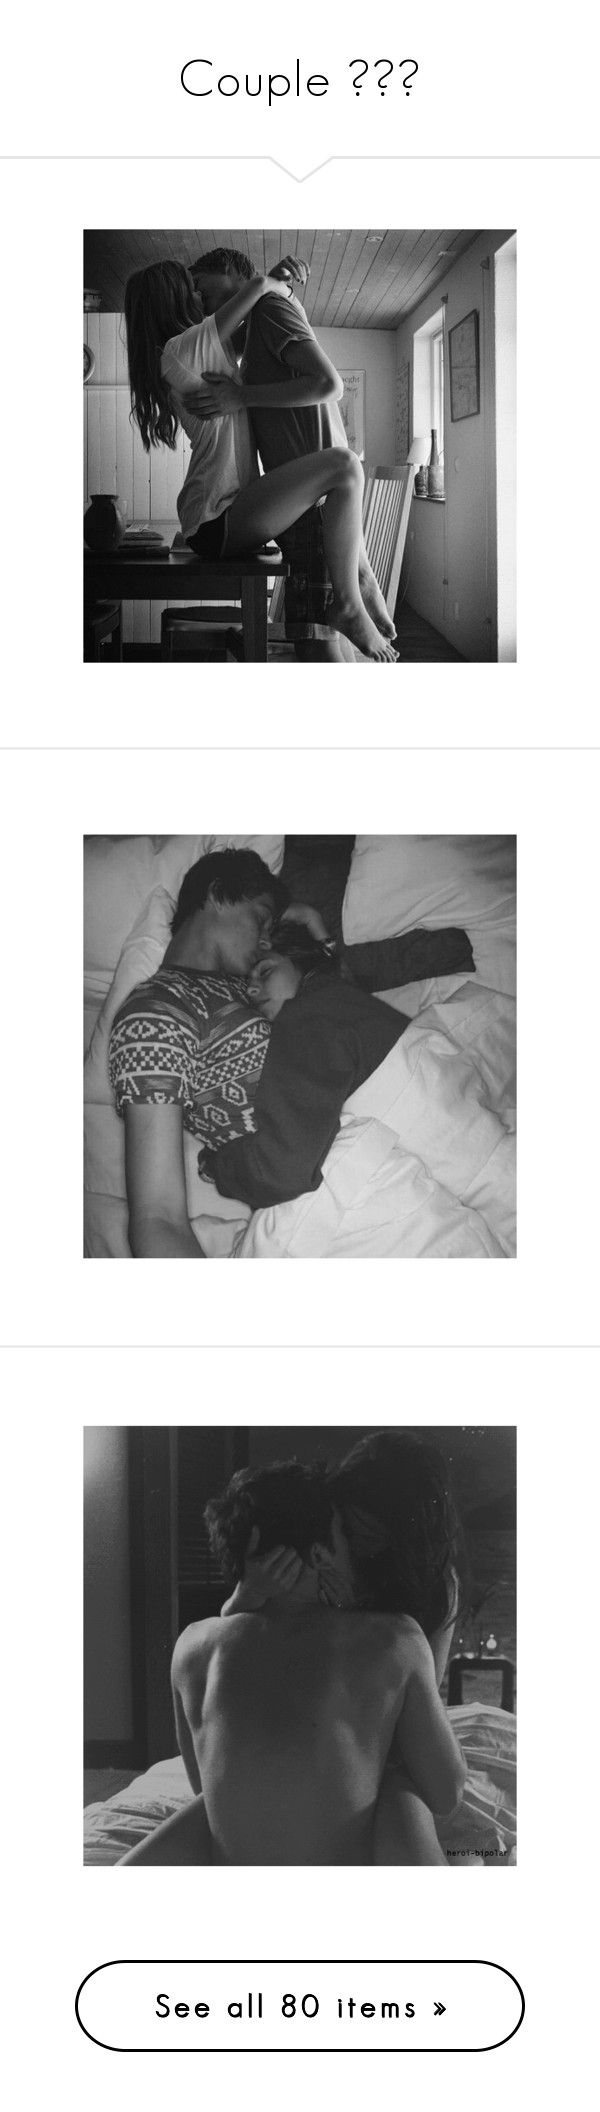 """""""Couple ❤️"""" by wwemelody ❤ liked on Polyvore featuring couples, pictures, black and white, backgrounds, love, black & white, b&w, misc, pics and sexy"""